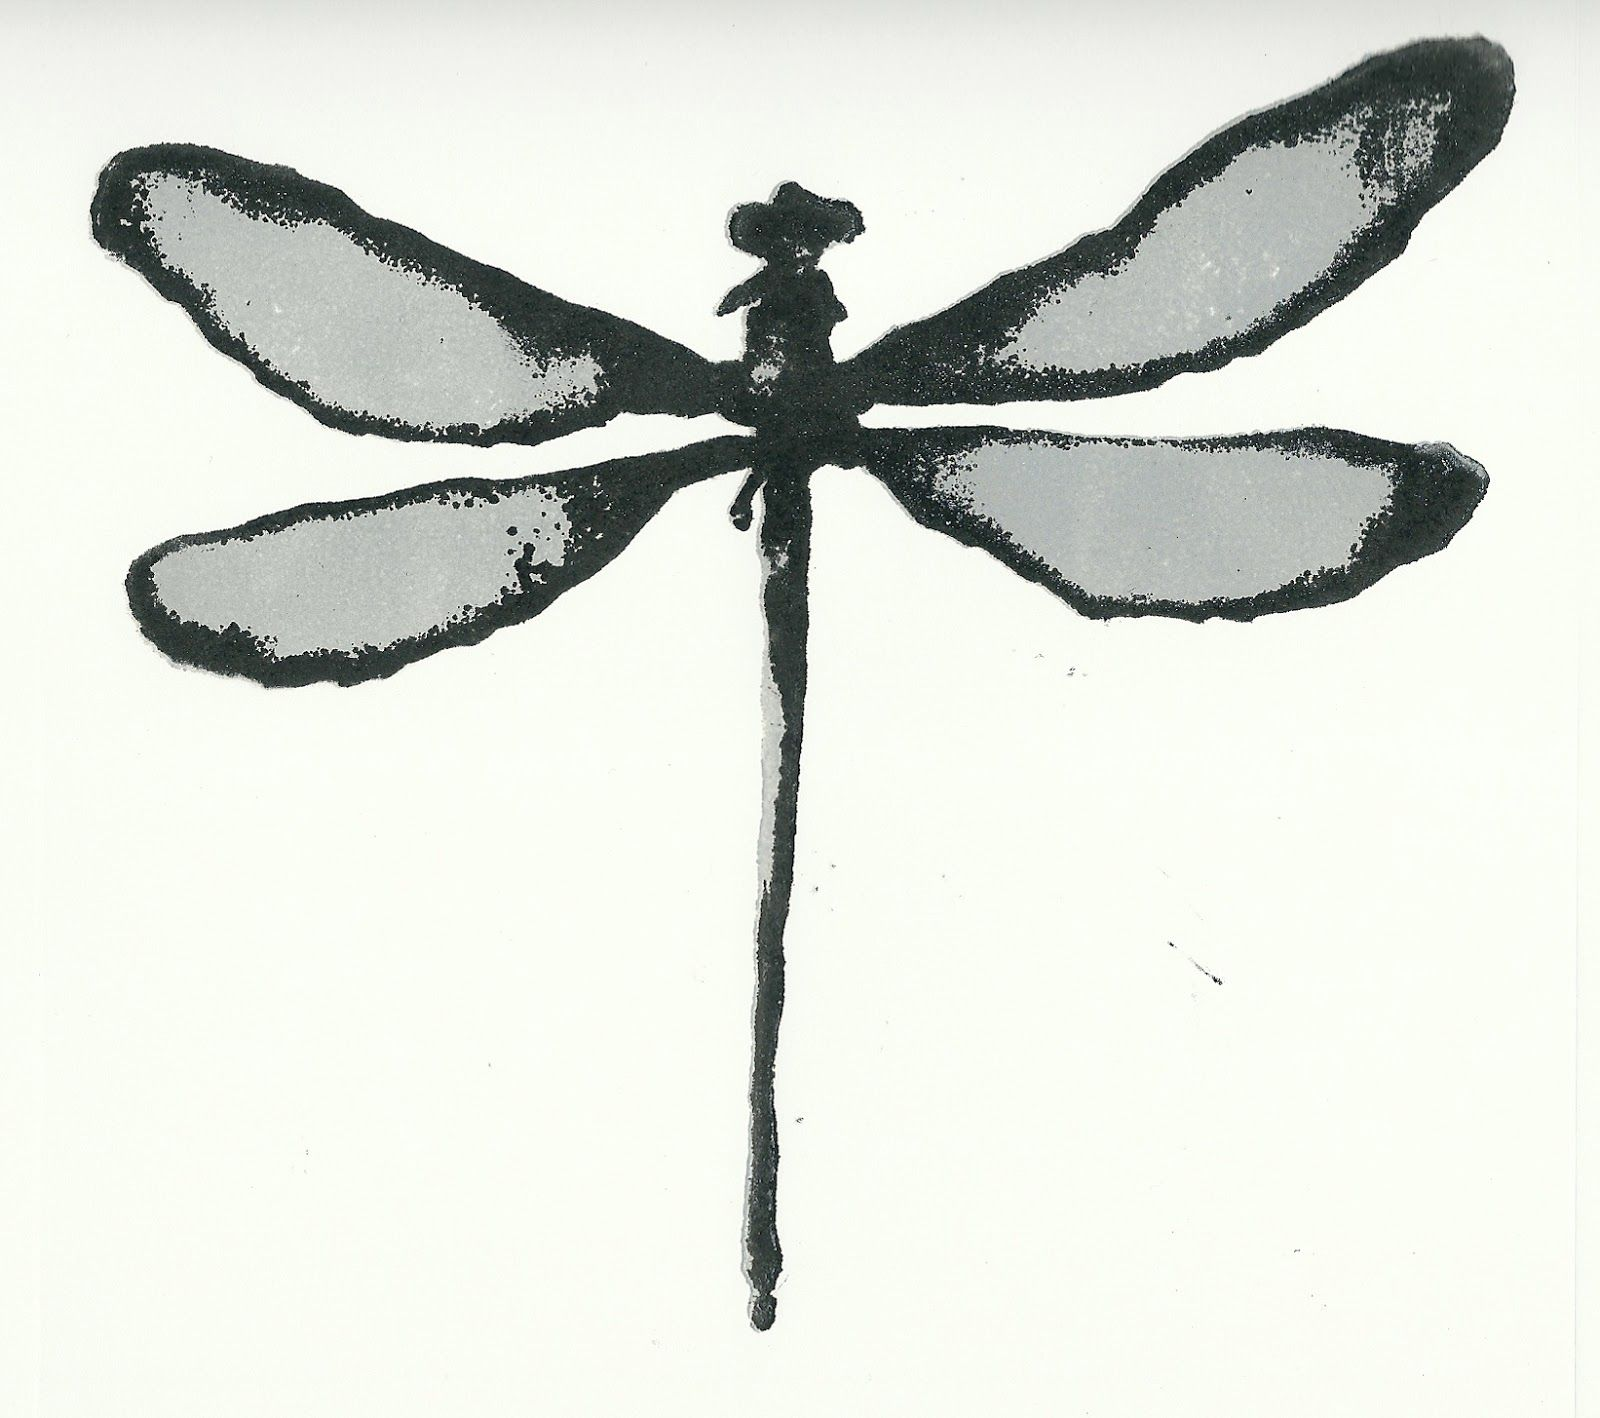 graphic about Dragonfly Template Printable named dragonfly+template+printable dragonfly monoprint 25x25cm